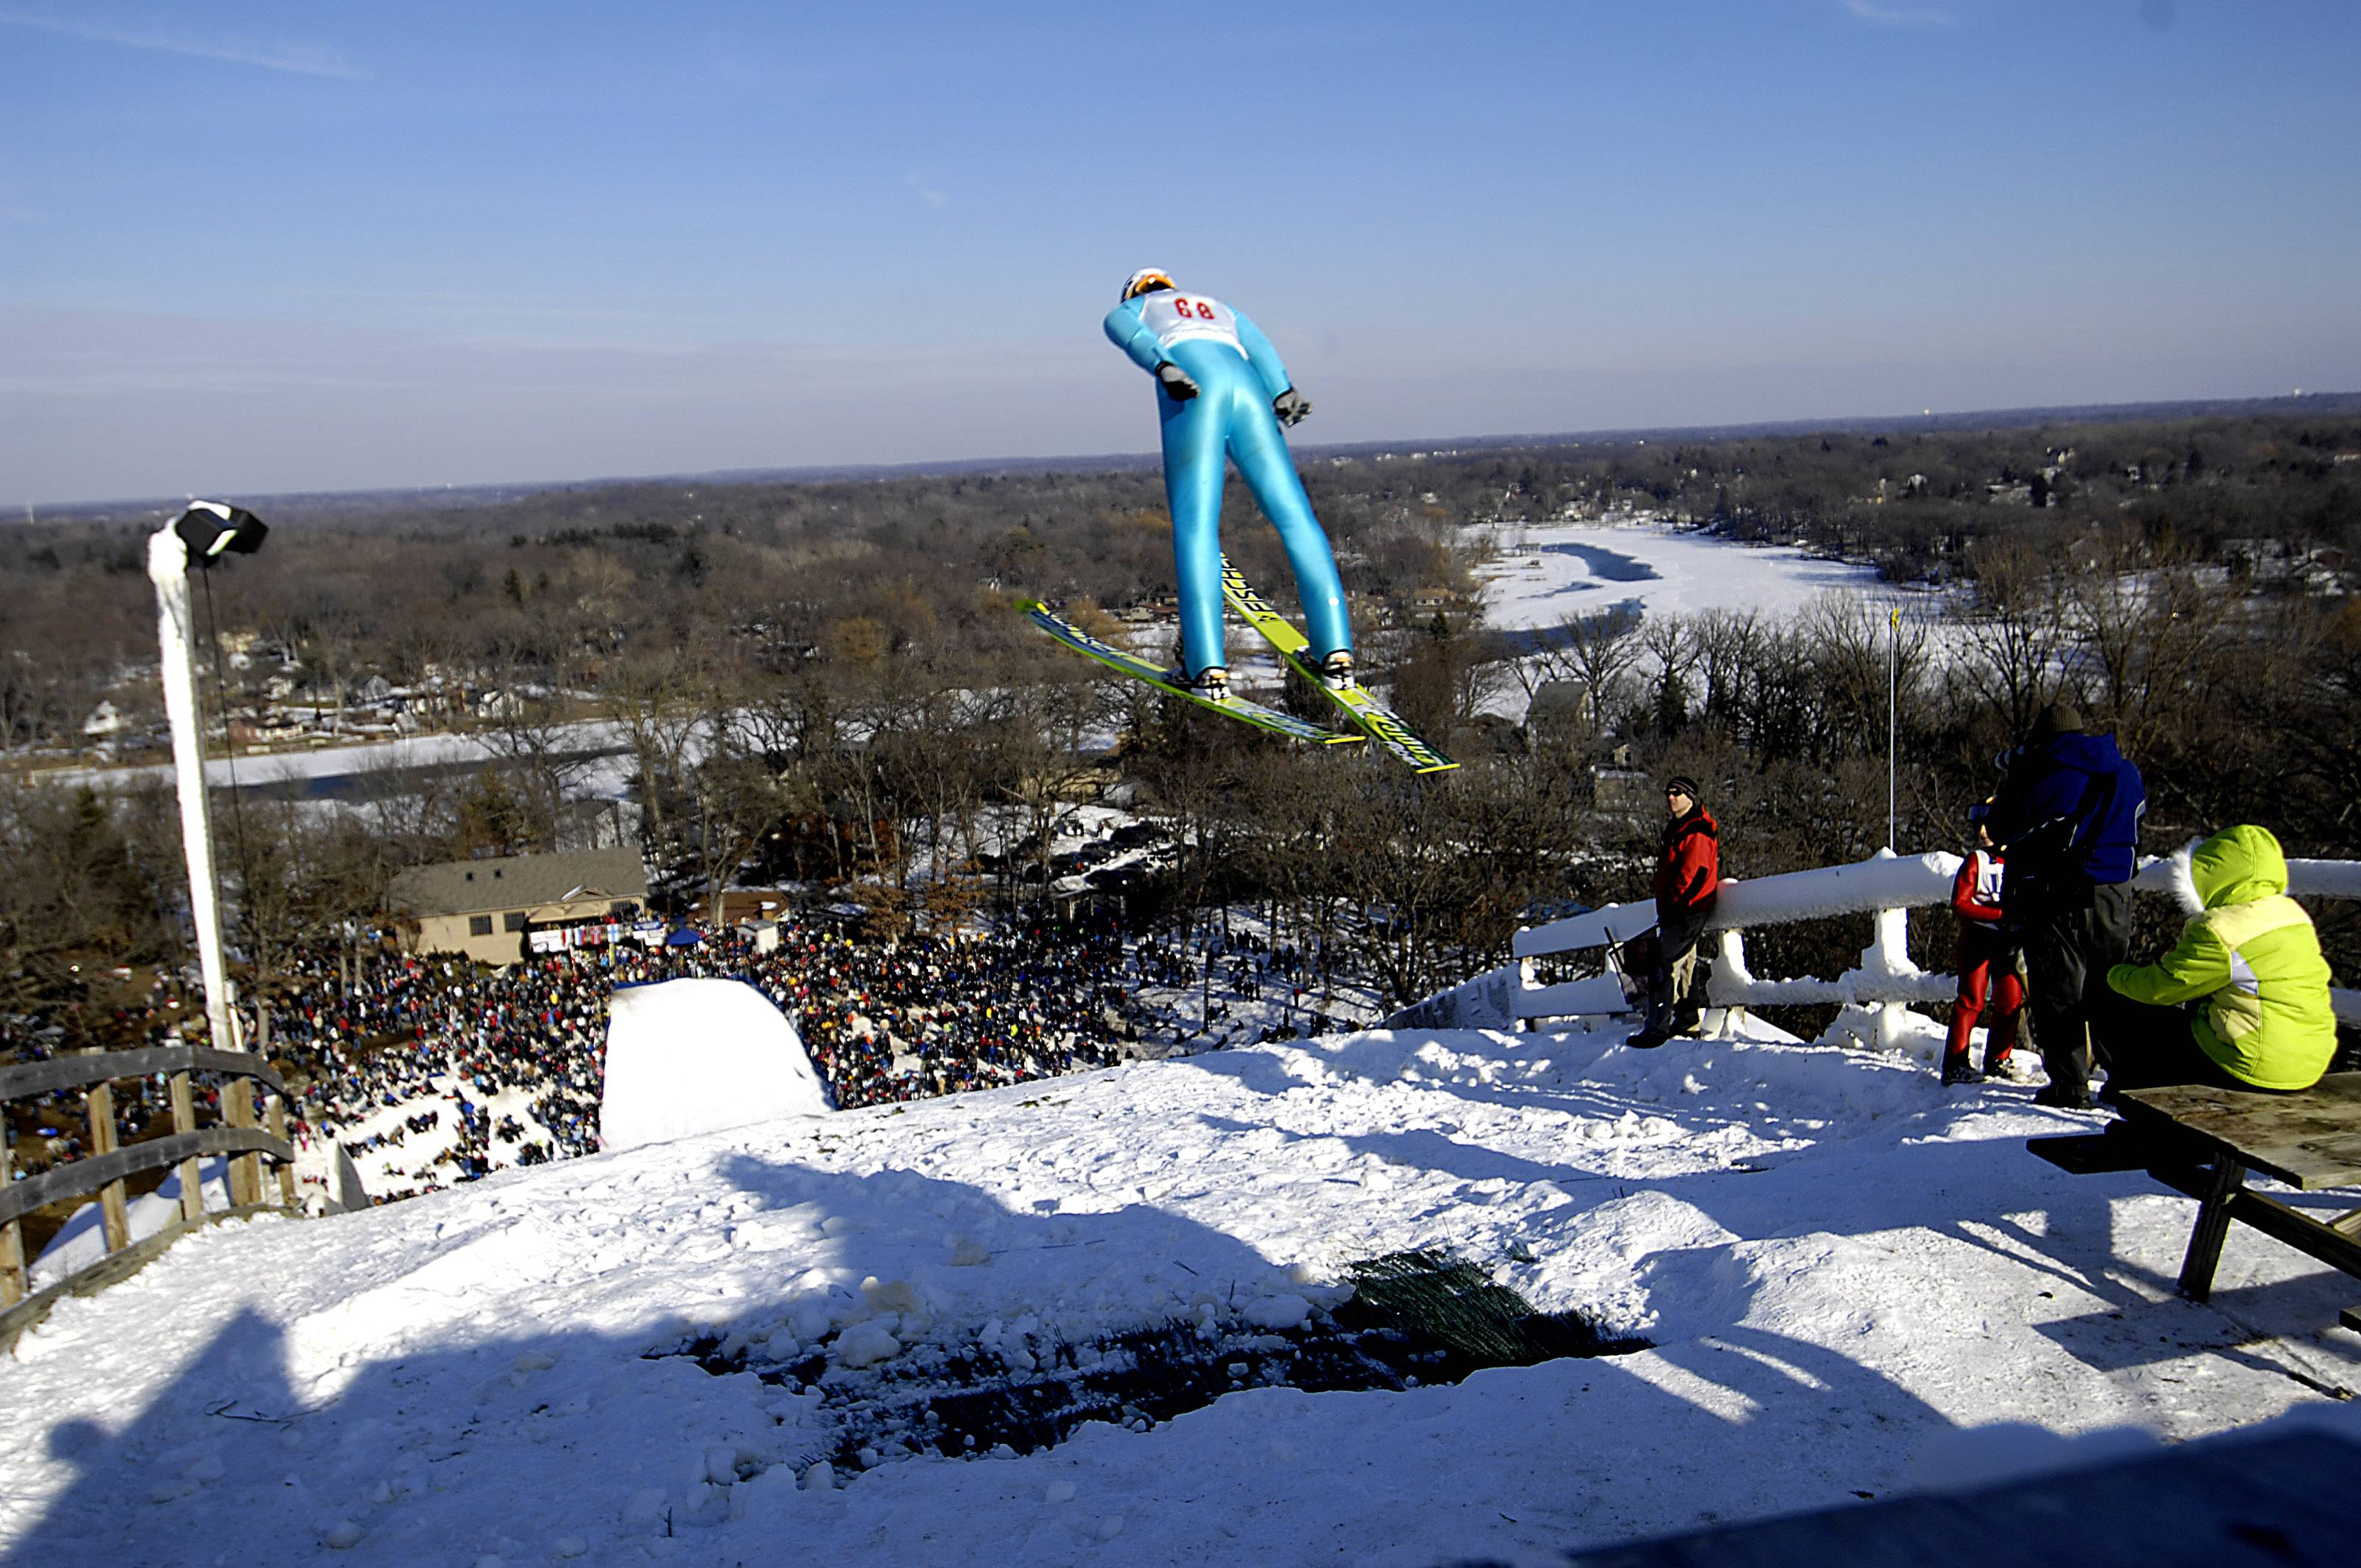 Some of the top American ski jumpers hail from the suburbs and learned their craft at the Norge Ski Club in Fox River Grove. Club member Michael Glasder of Cary qualified for the U.S. Olympic team over the weekend, and he soon could be joined by three more Norge jumpers.